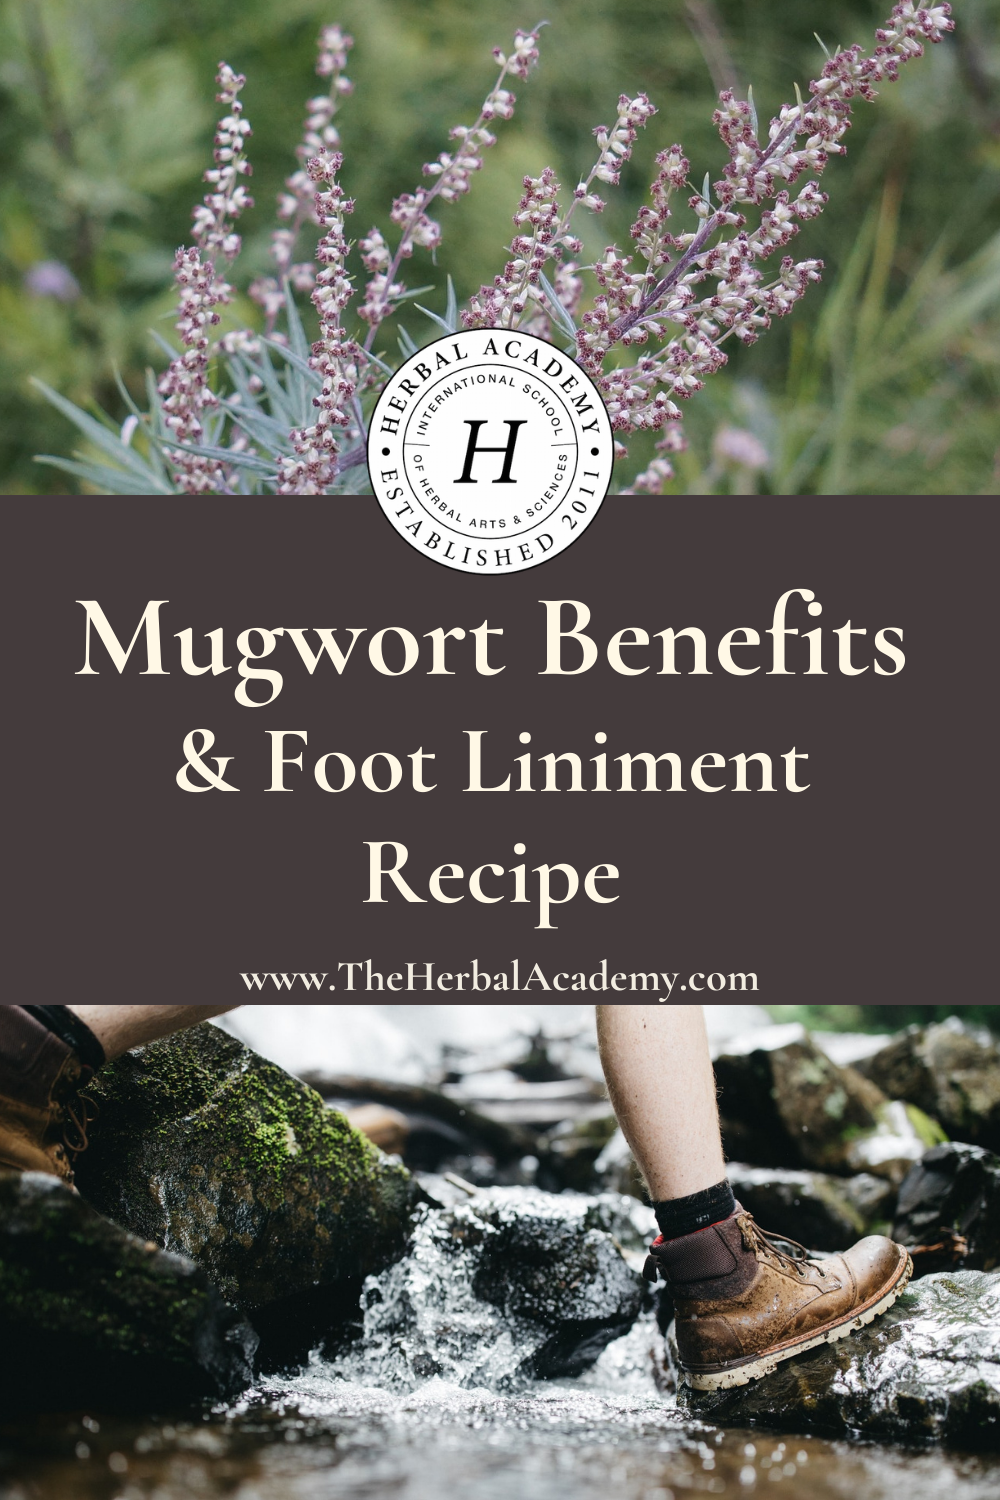 Mugwort Benefits & An Herbal Liniment Recipe | Herbal Academy | There are many mugwort benefits beyond its traditional uses for sleeping and dreaming that are worth exploring.